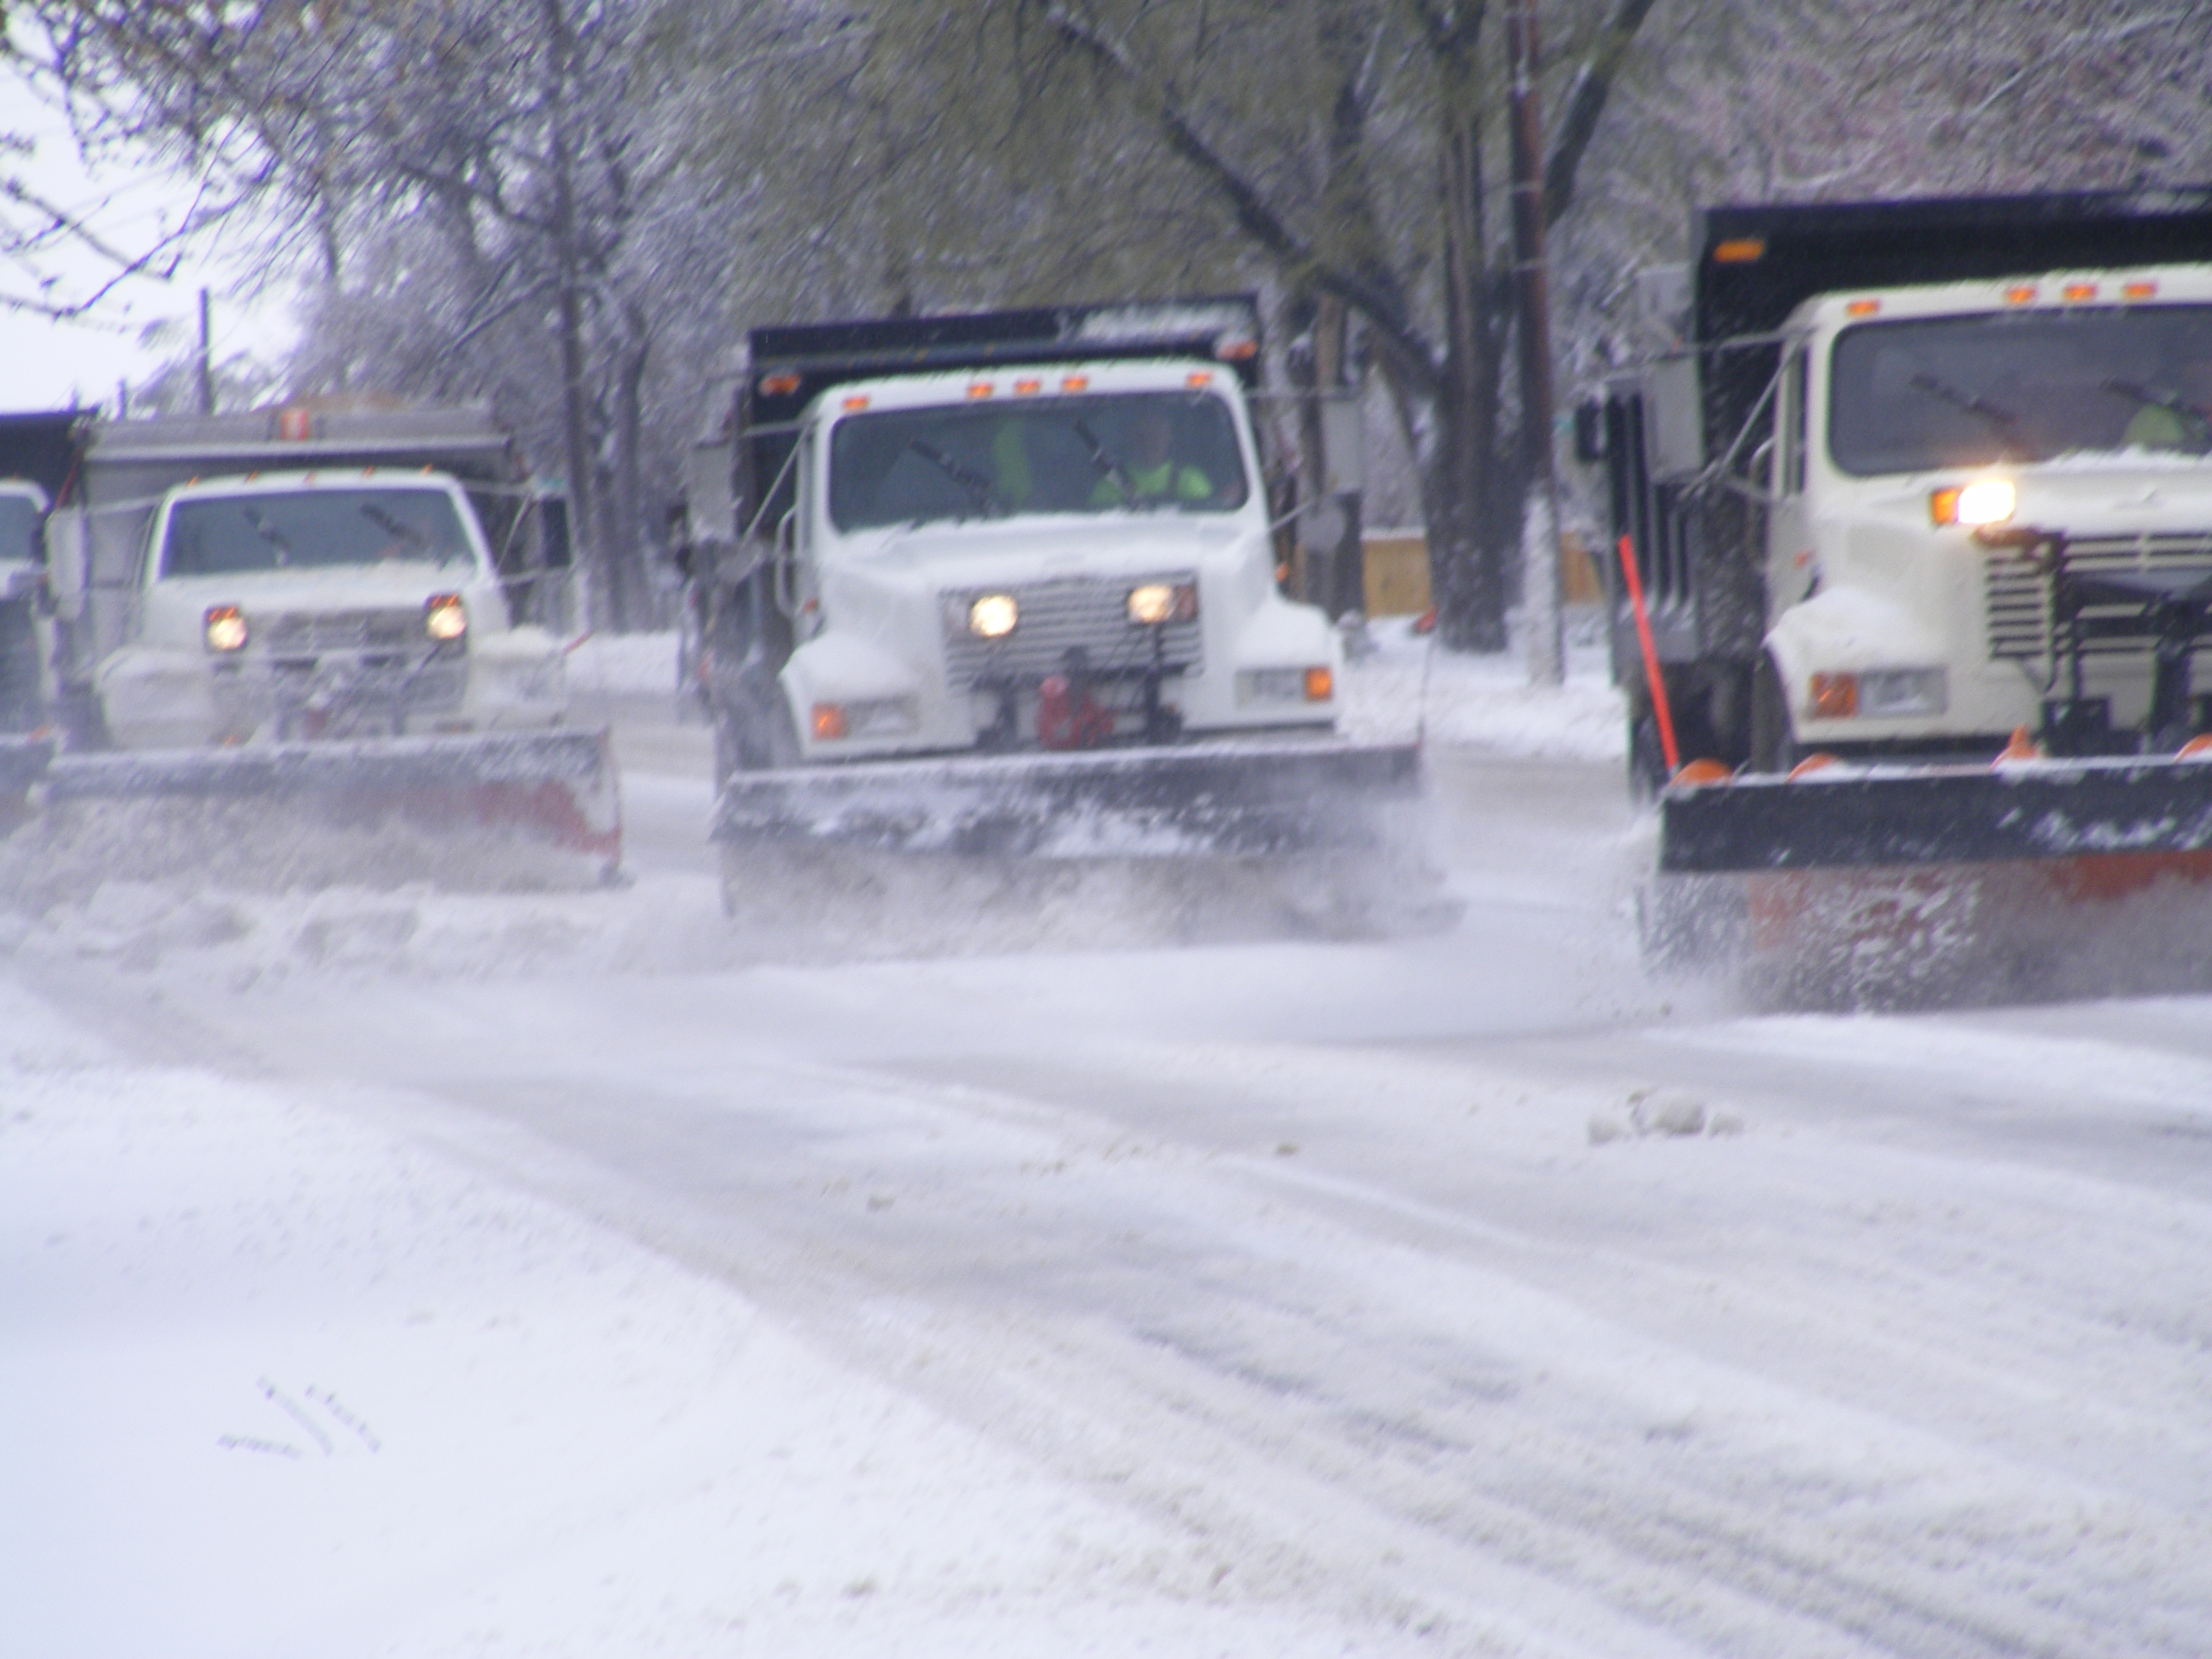 3 Snow Plow Truck on the Street